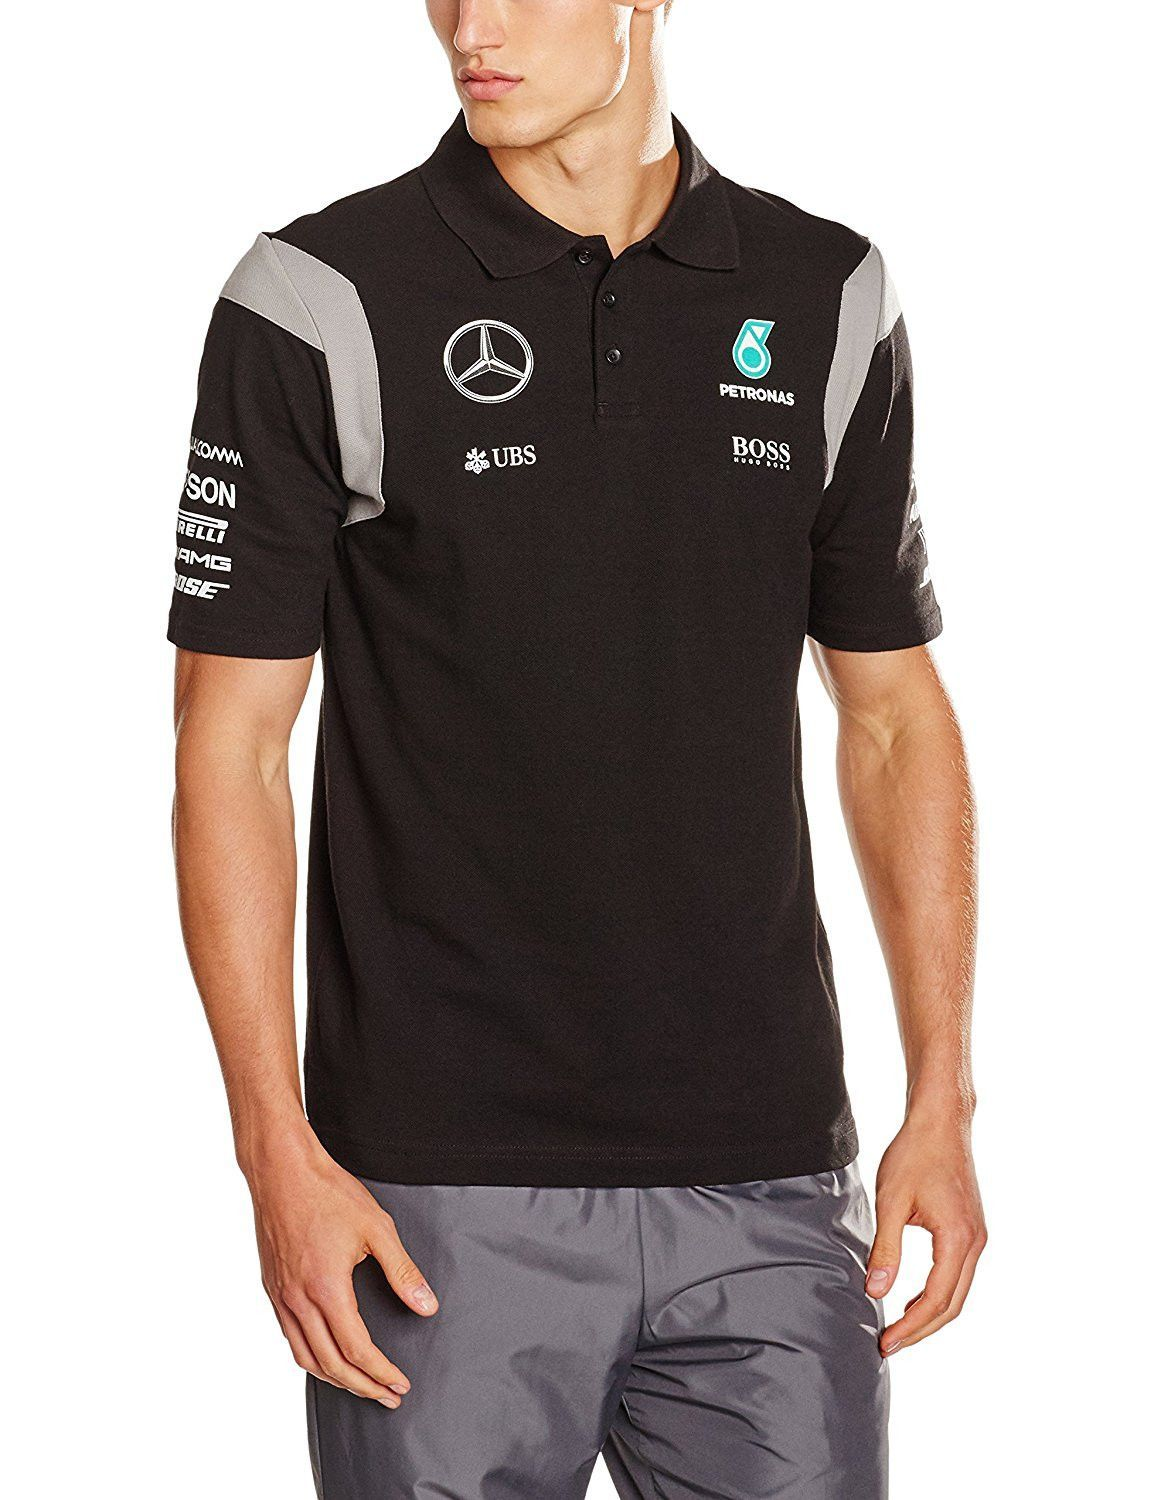 mercedes 2016 formula 1 team polo shirt with sponsers nico rosberg pinterest camisas. Black Bedroom Furniture Sets. Home Design Ideas